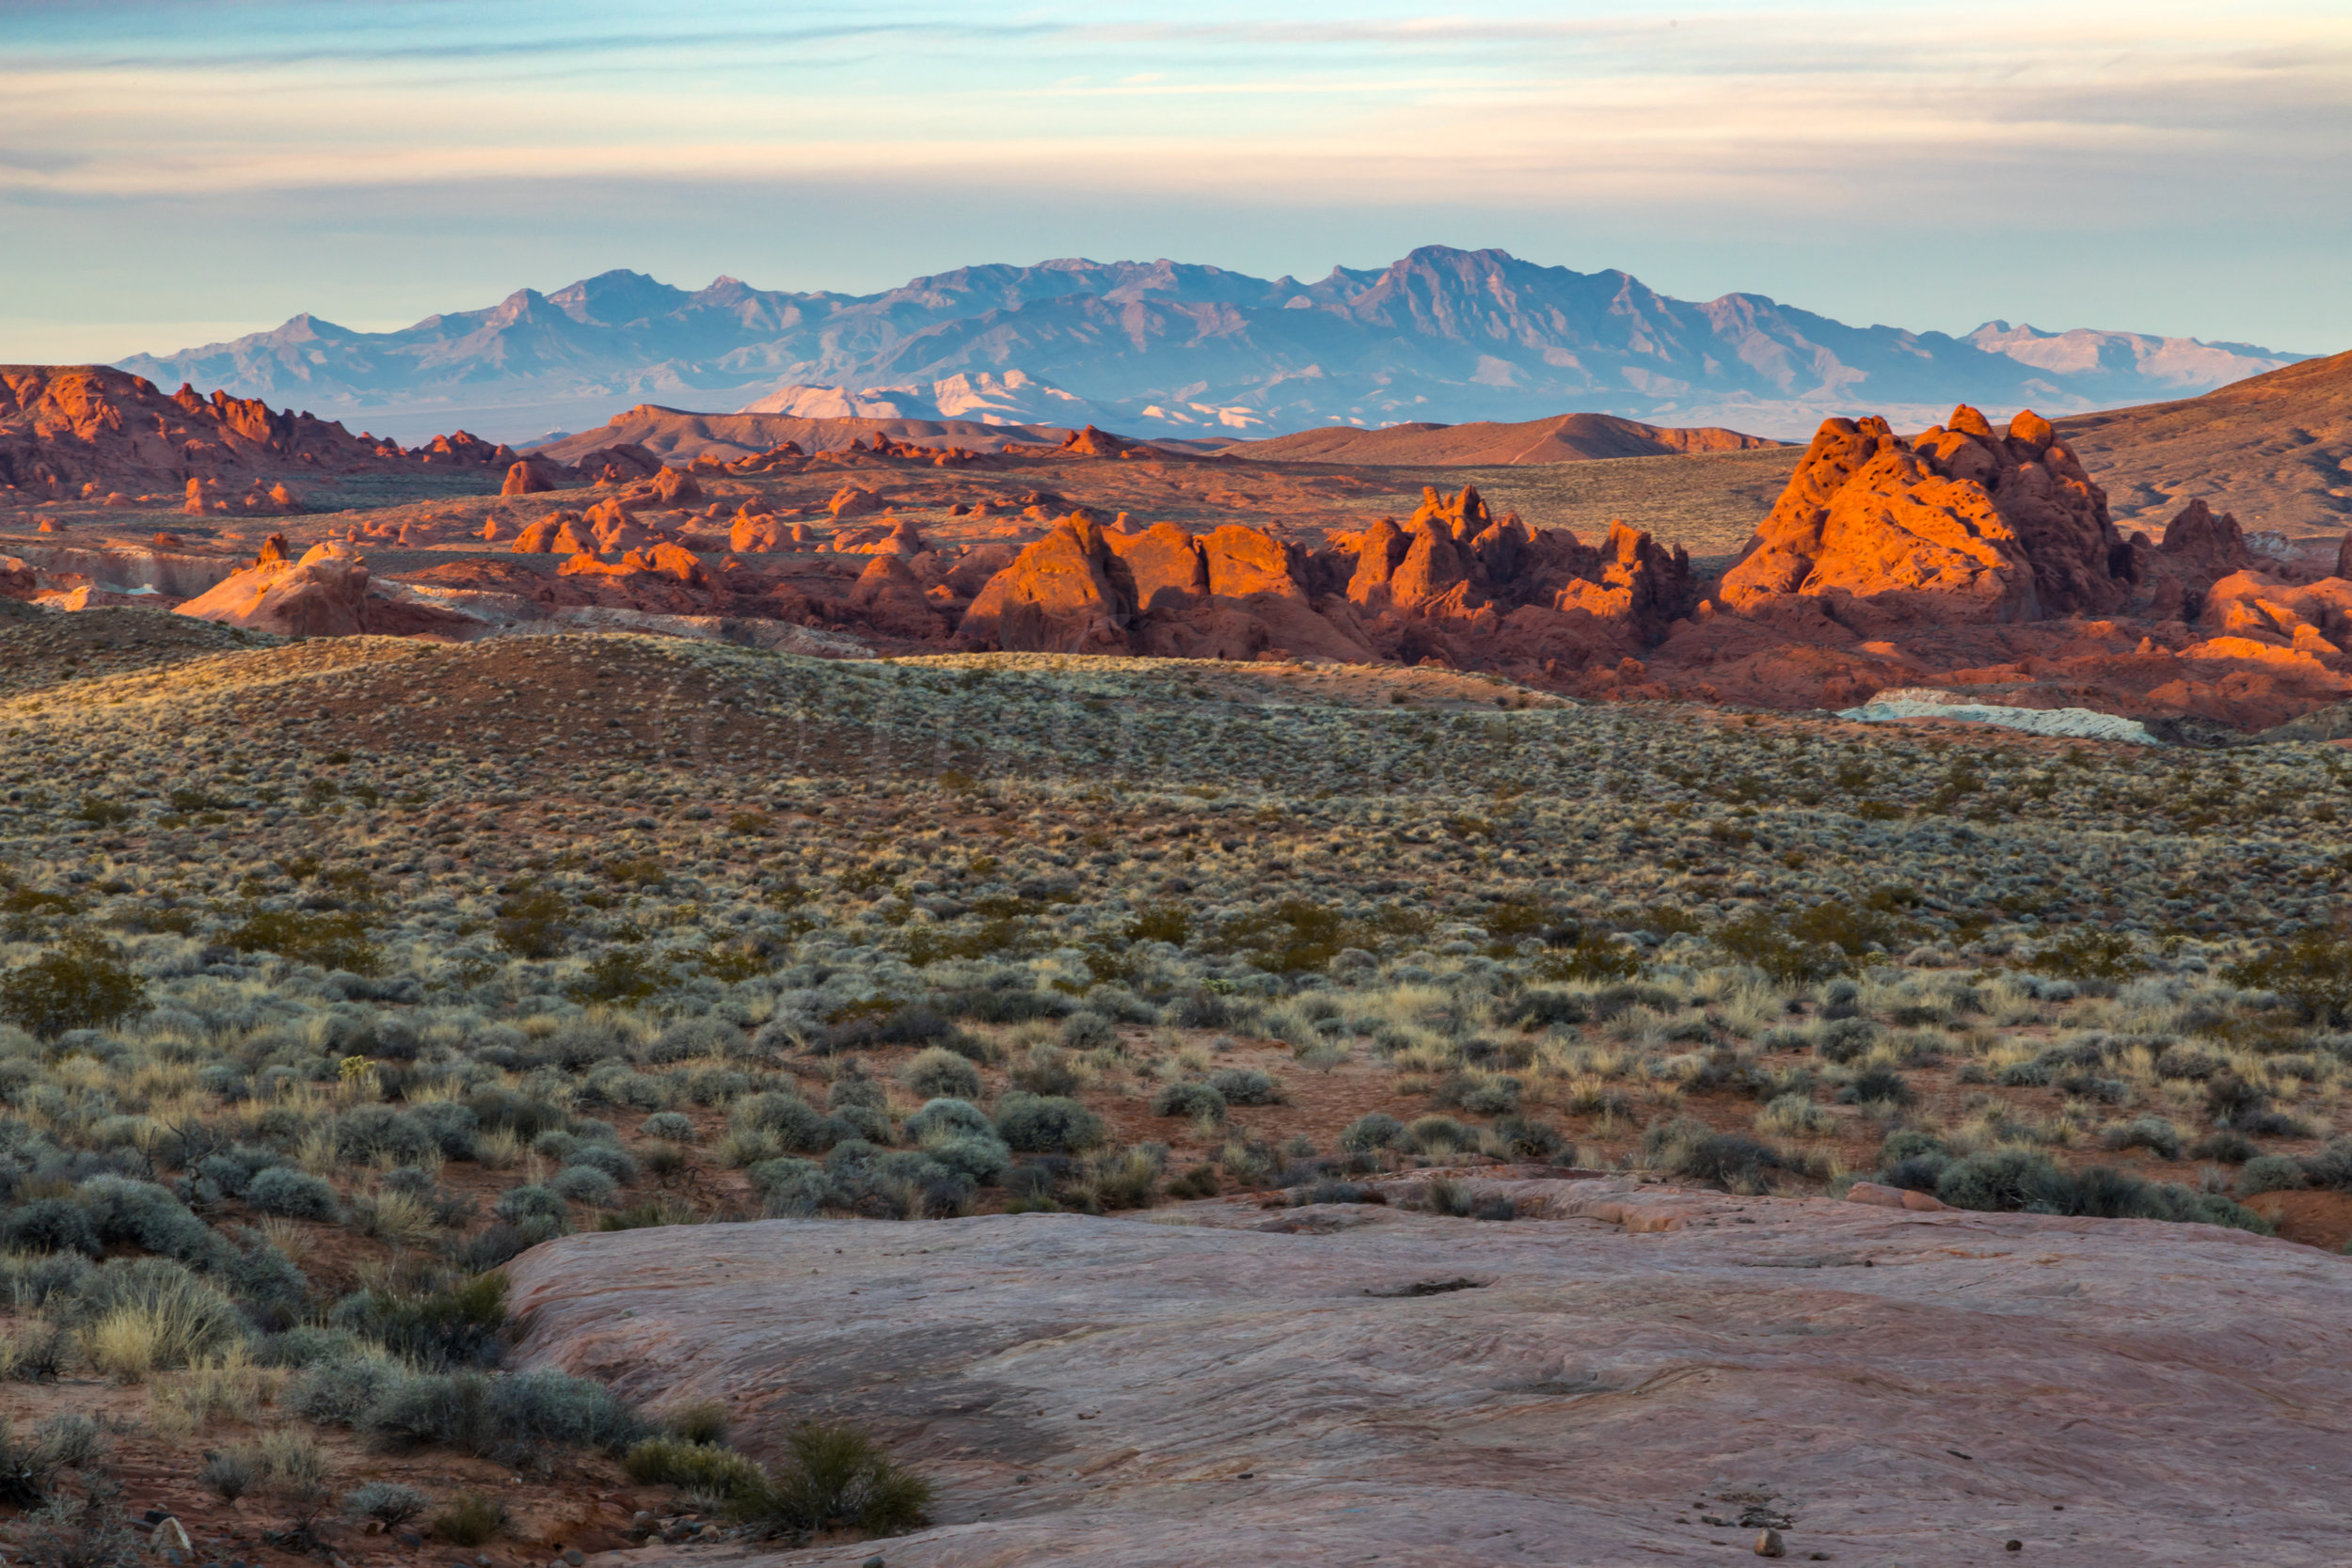 Valley of Fire, Image # 2517